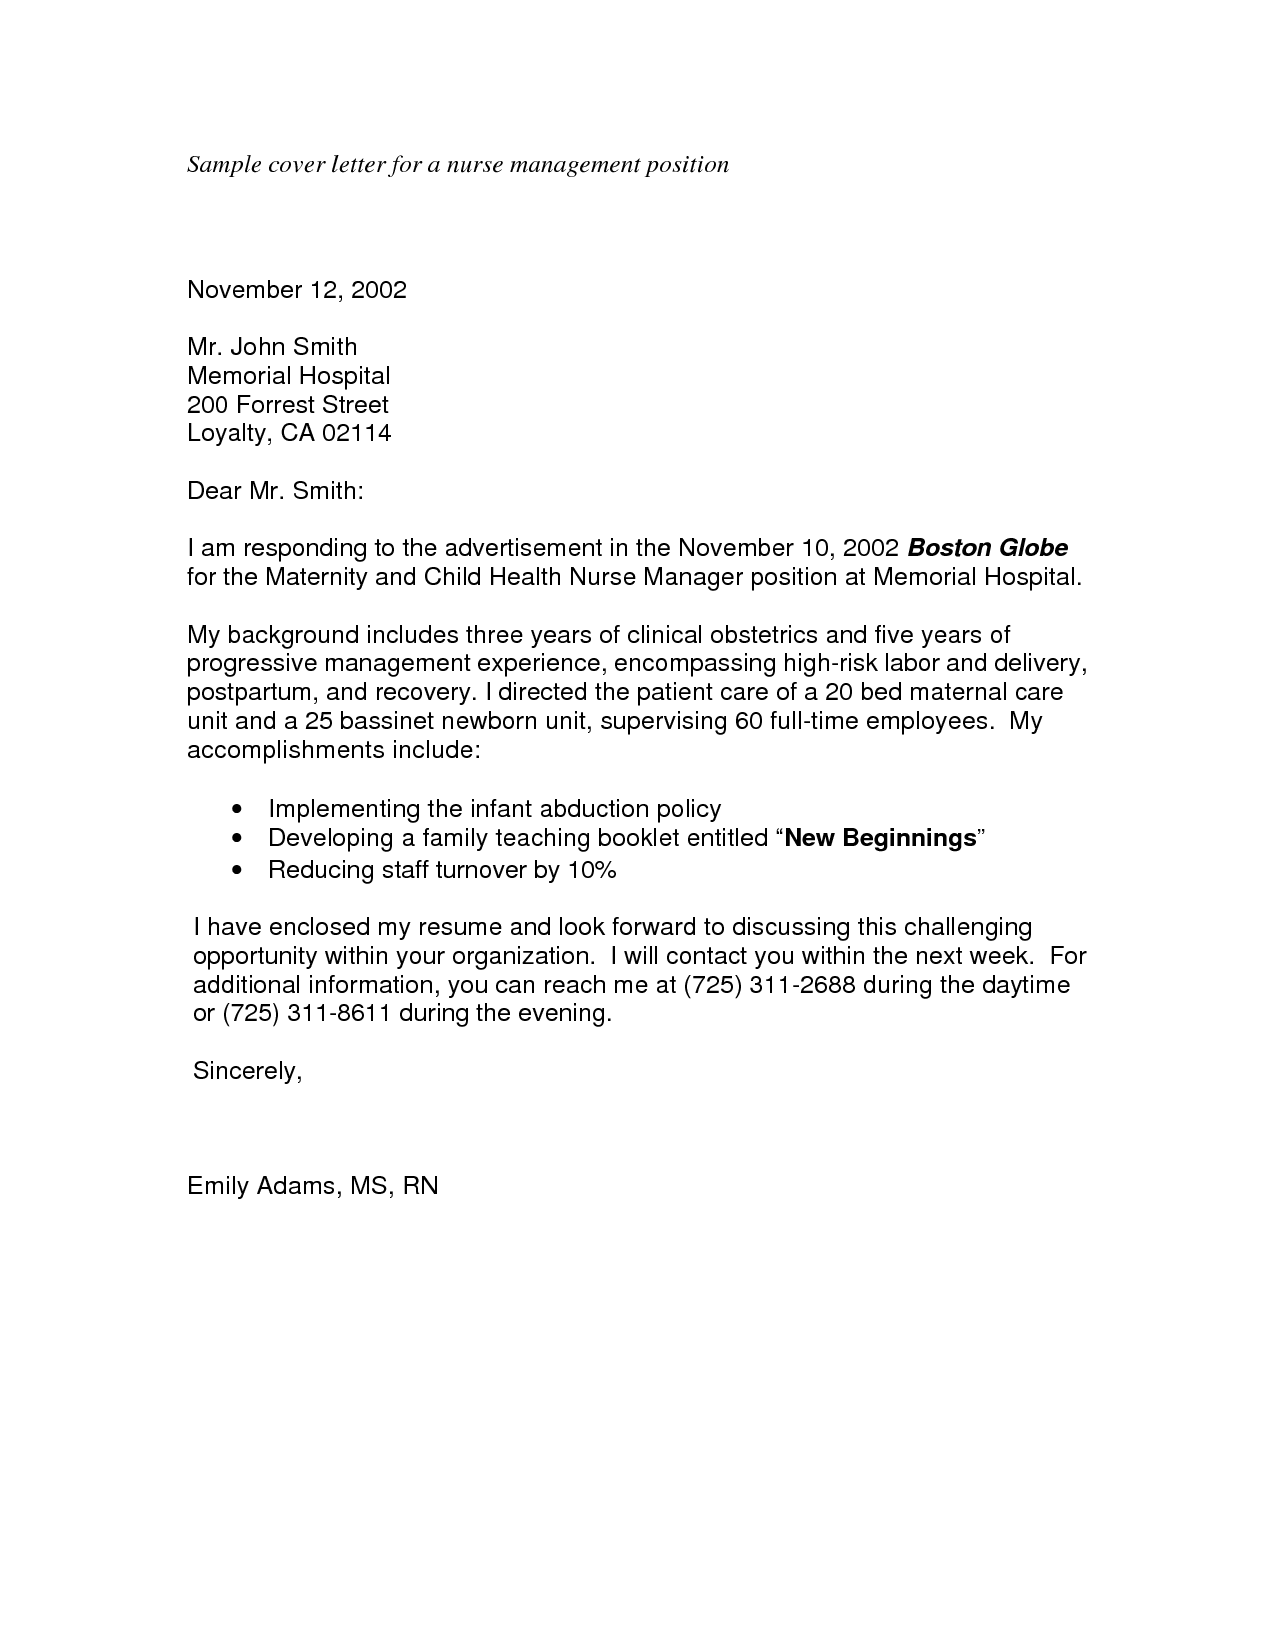 Sample Nursing Application Cover Letters  Sample Cover Letter For